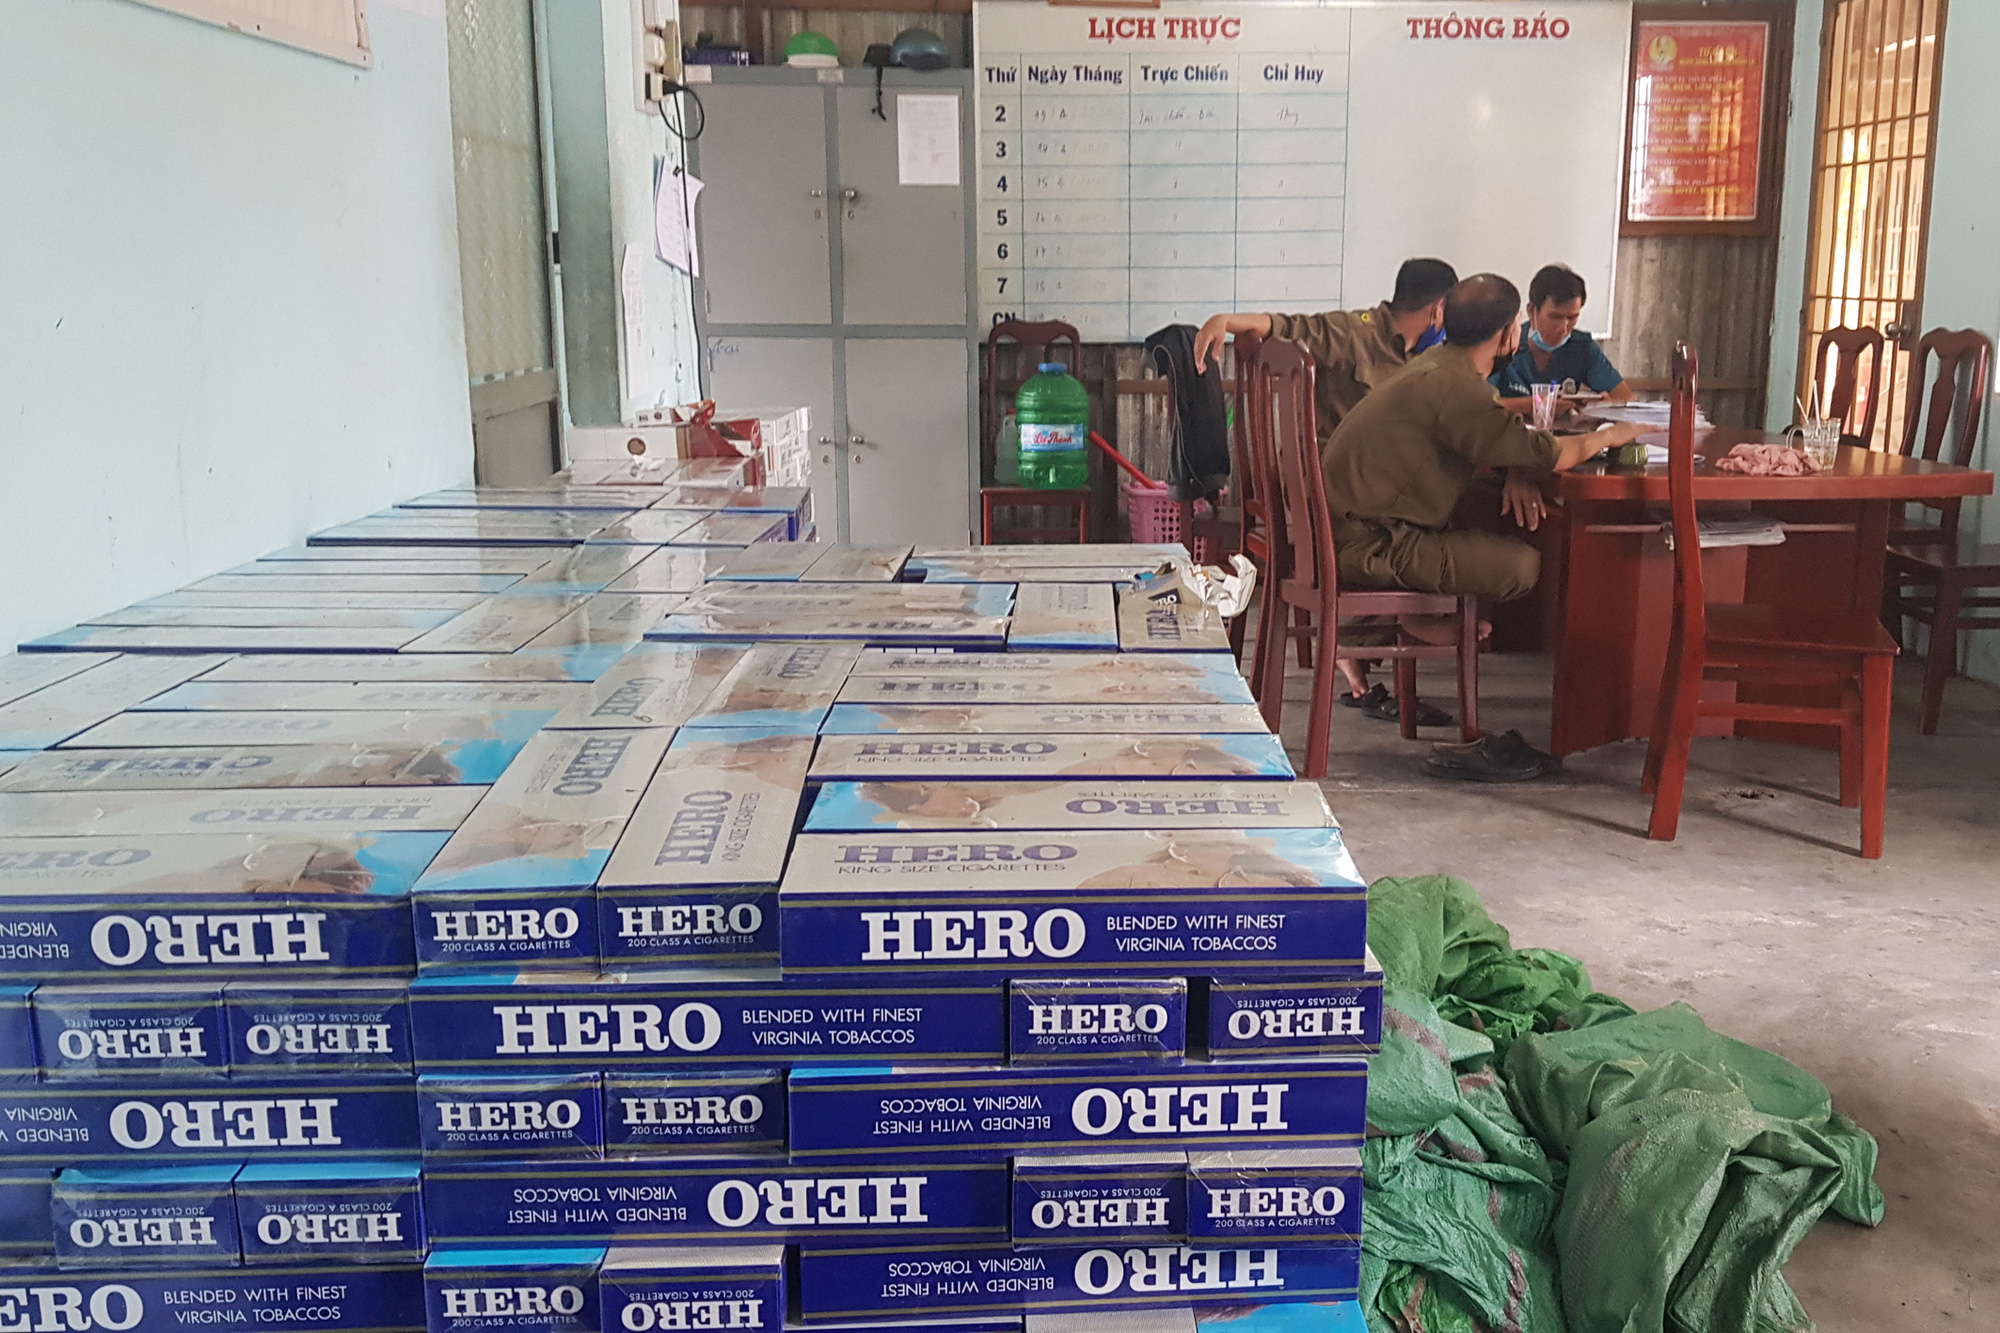 Five officials injured in clash with over 200 cigarette smugglers in southern Vietnam